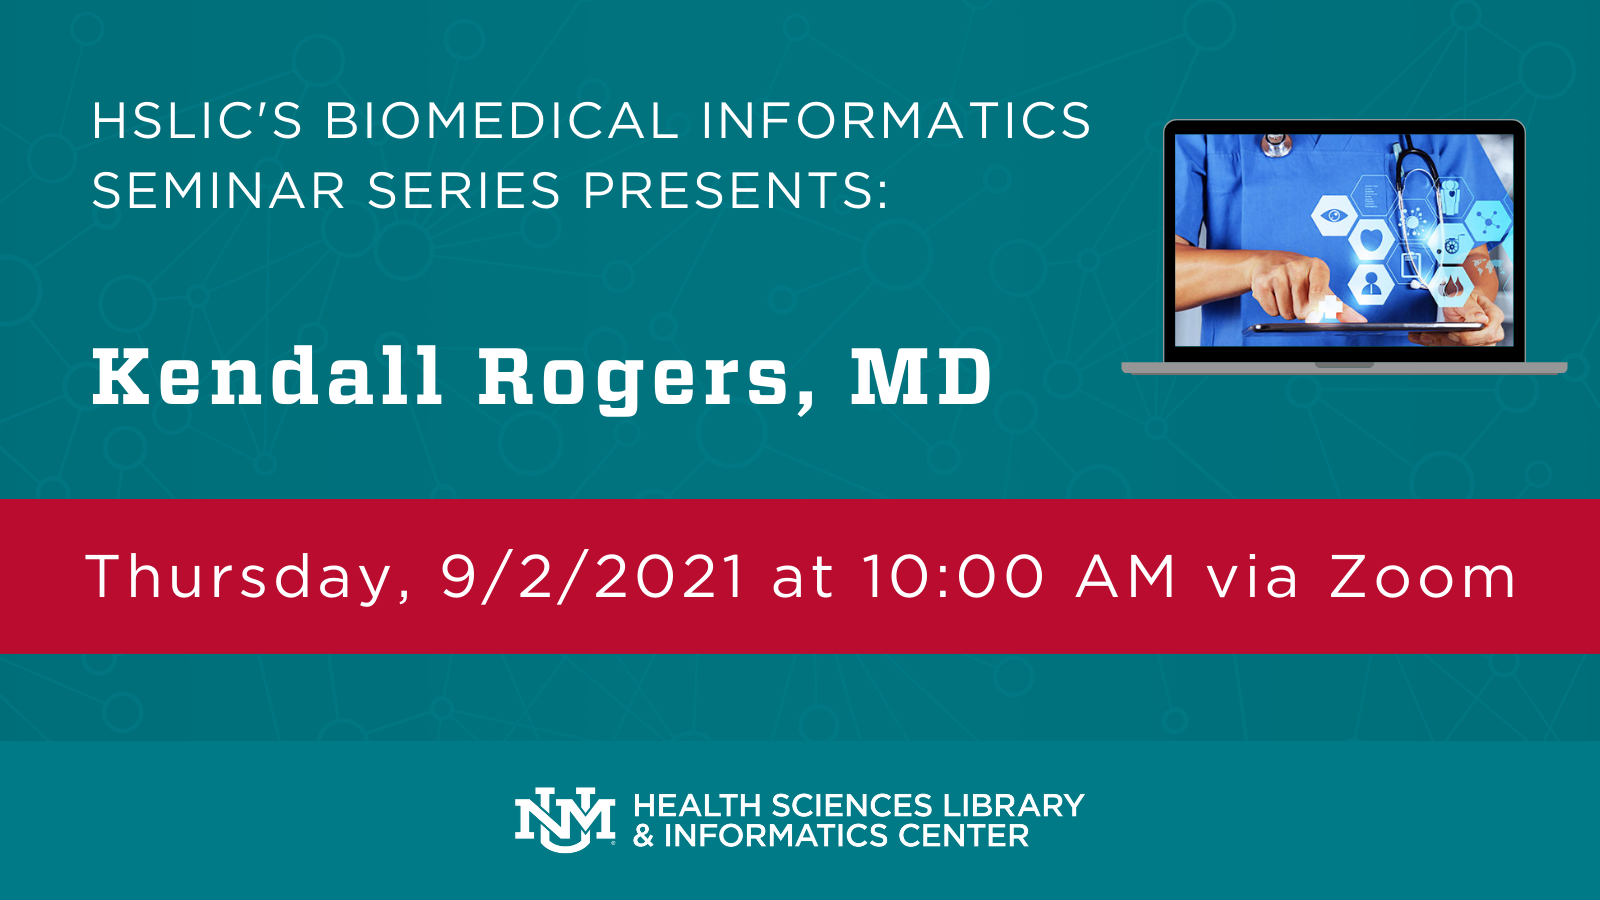 Image containing details of next Biomedical Informatics Seminar Series: Presenter – Kendall Rogers, MD; Scheduled for Thursday, 9/2/2021 at 10:00 AM via Zoom.